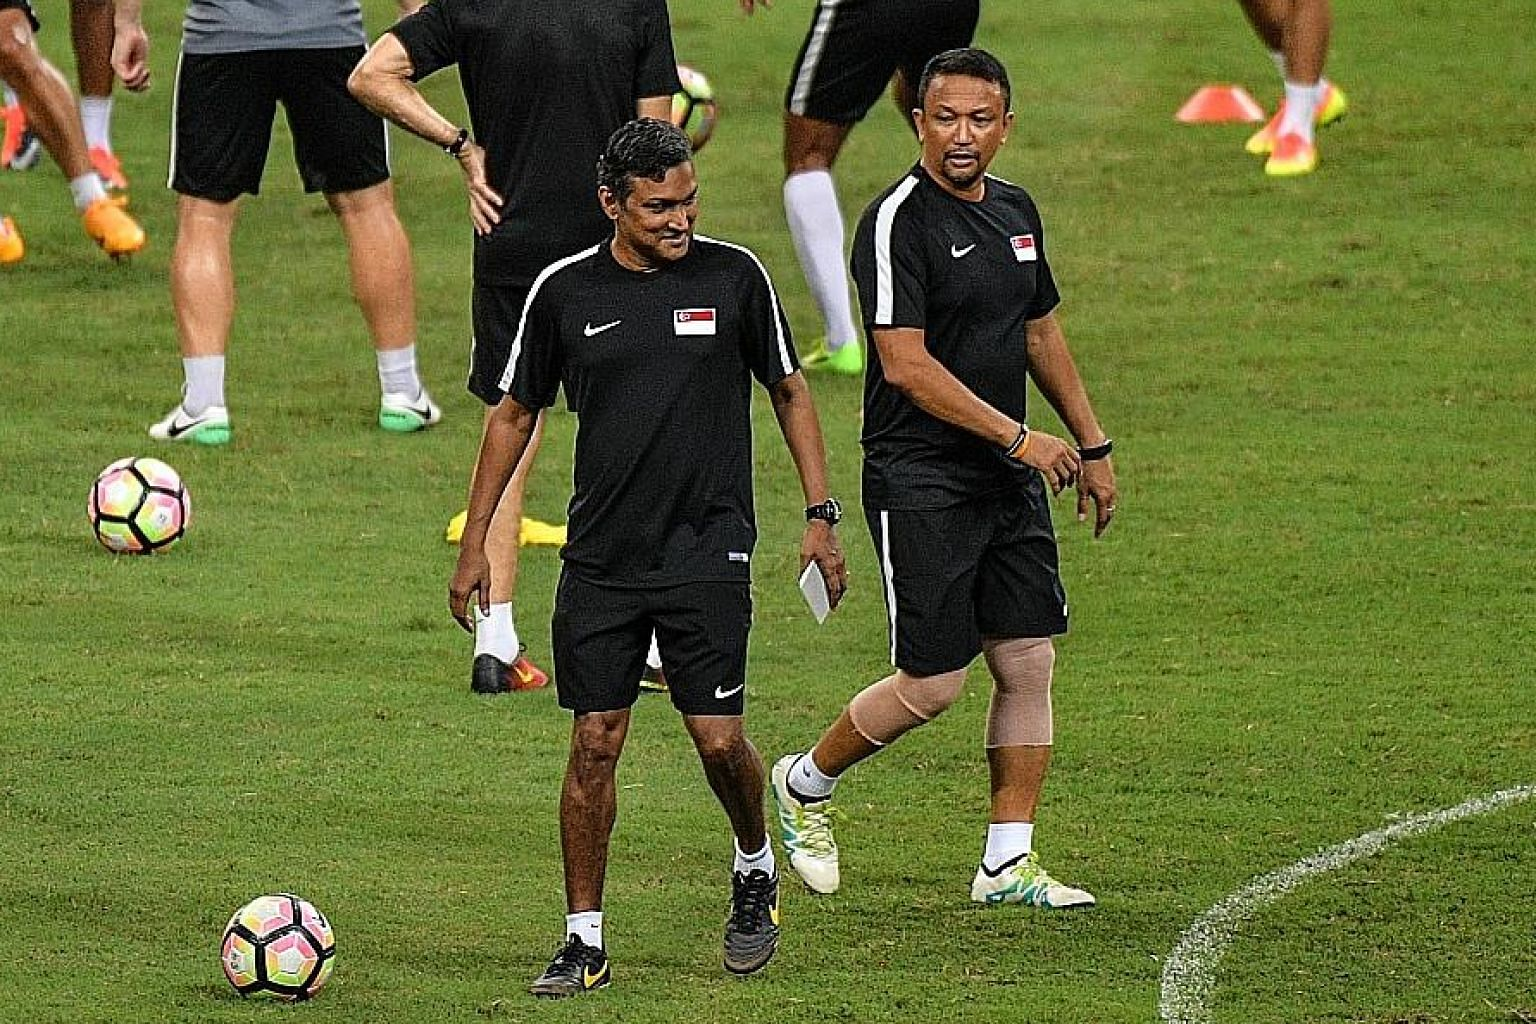 V. Sundram Moorthy and Fandi Ahmad leading the Lions in training in June 2017 before the marquee friendly against Argentina.